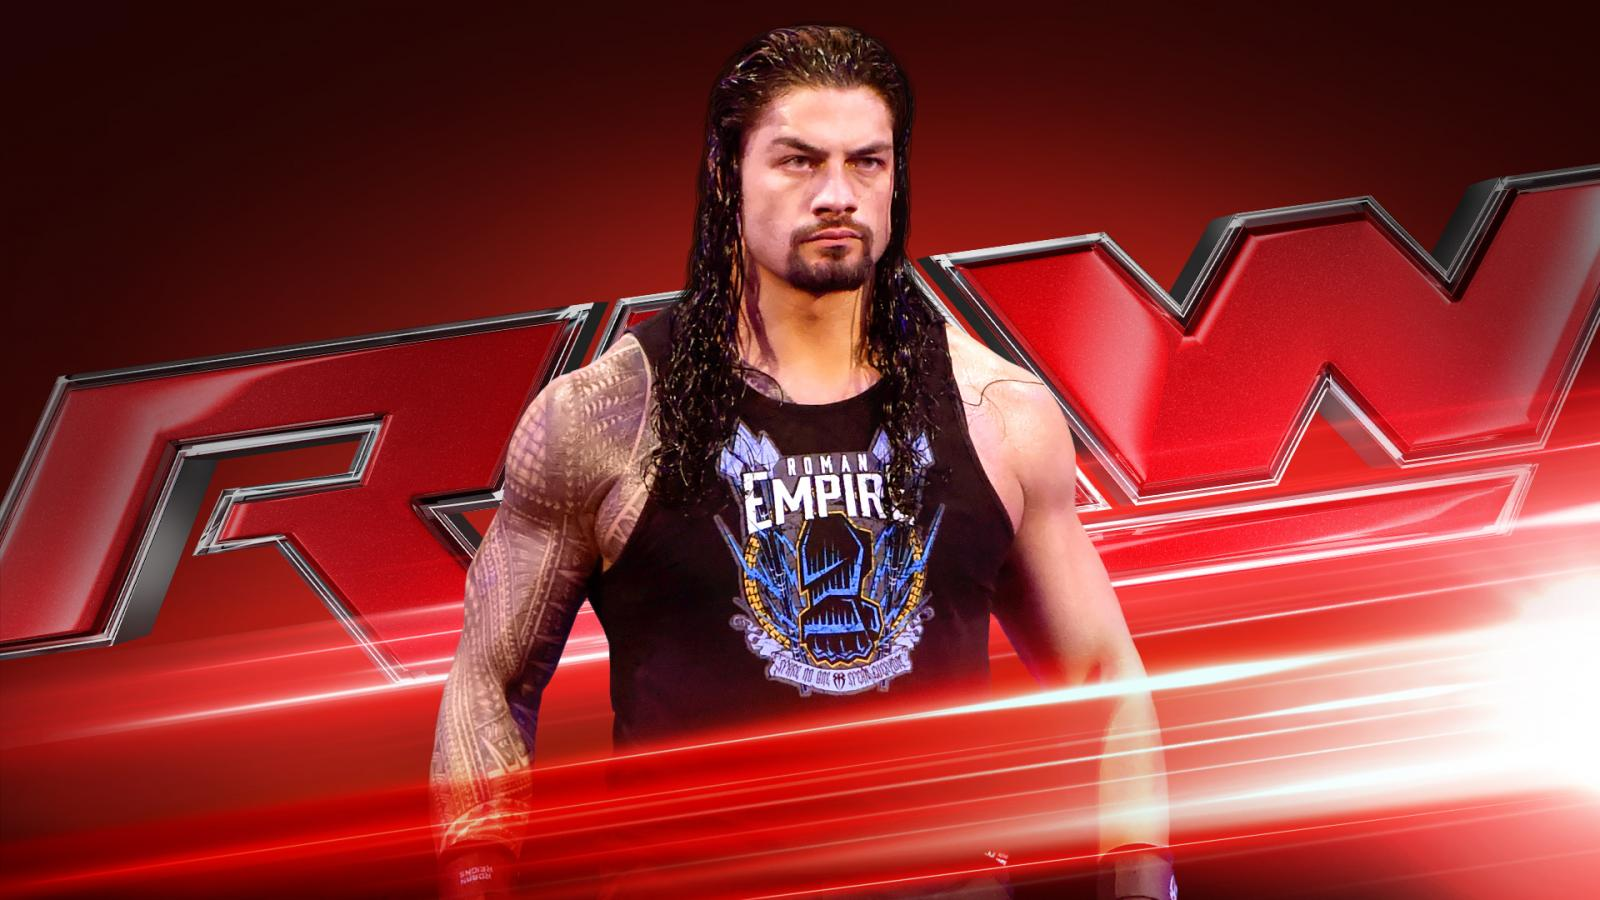 Wwe raw fantasy booking for mar 21 - Monday night raw images ...